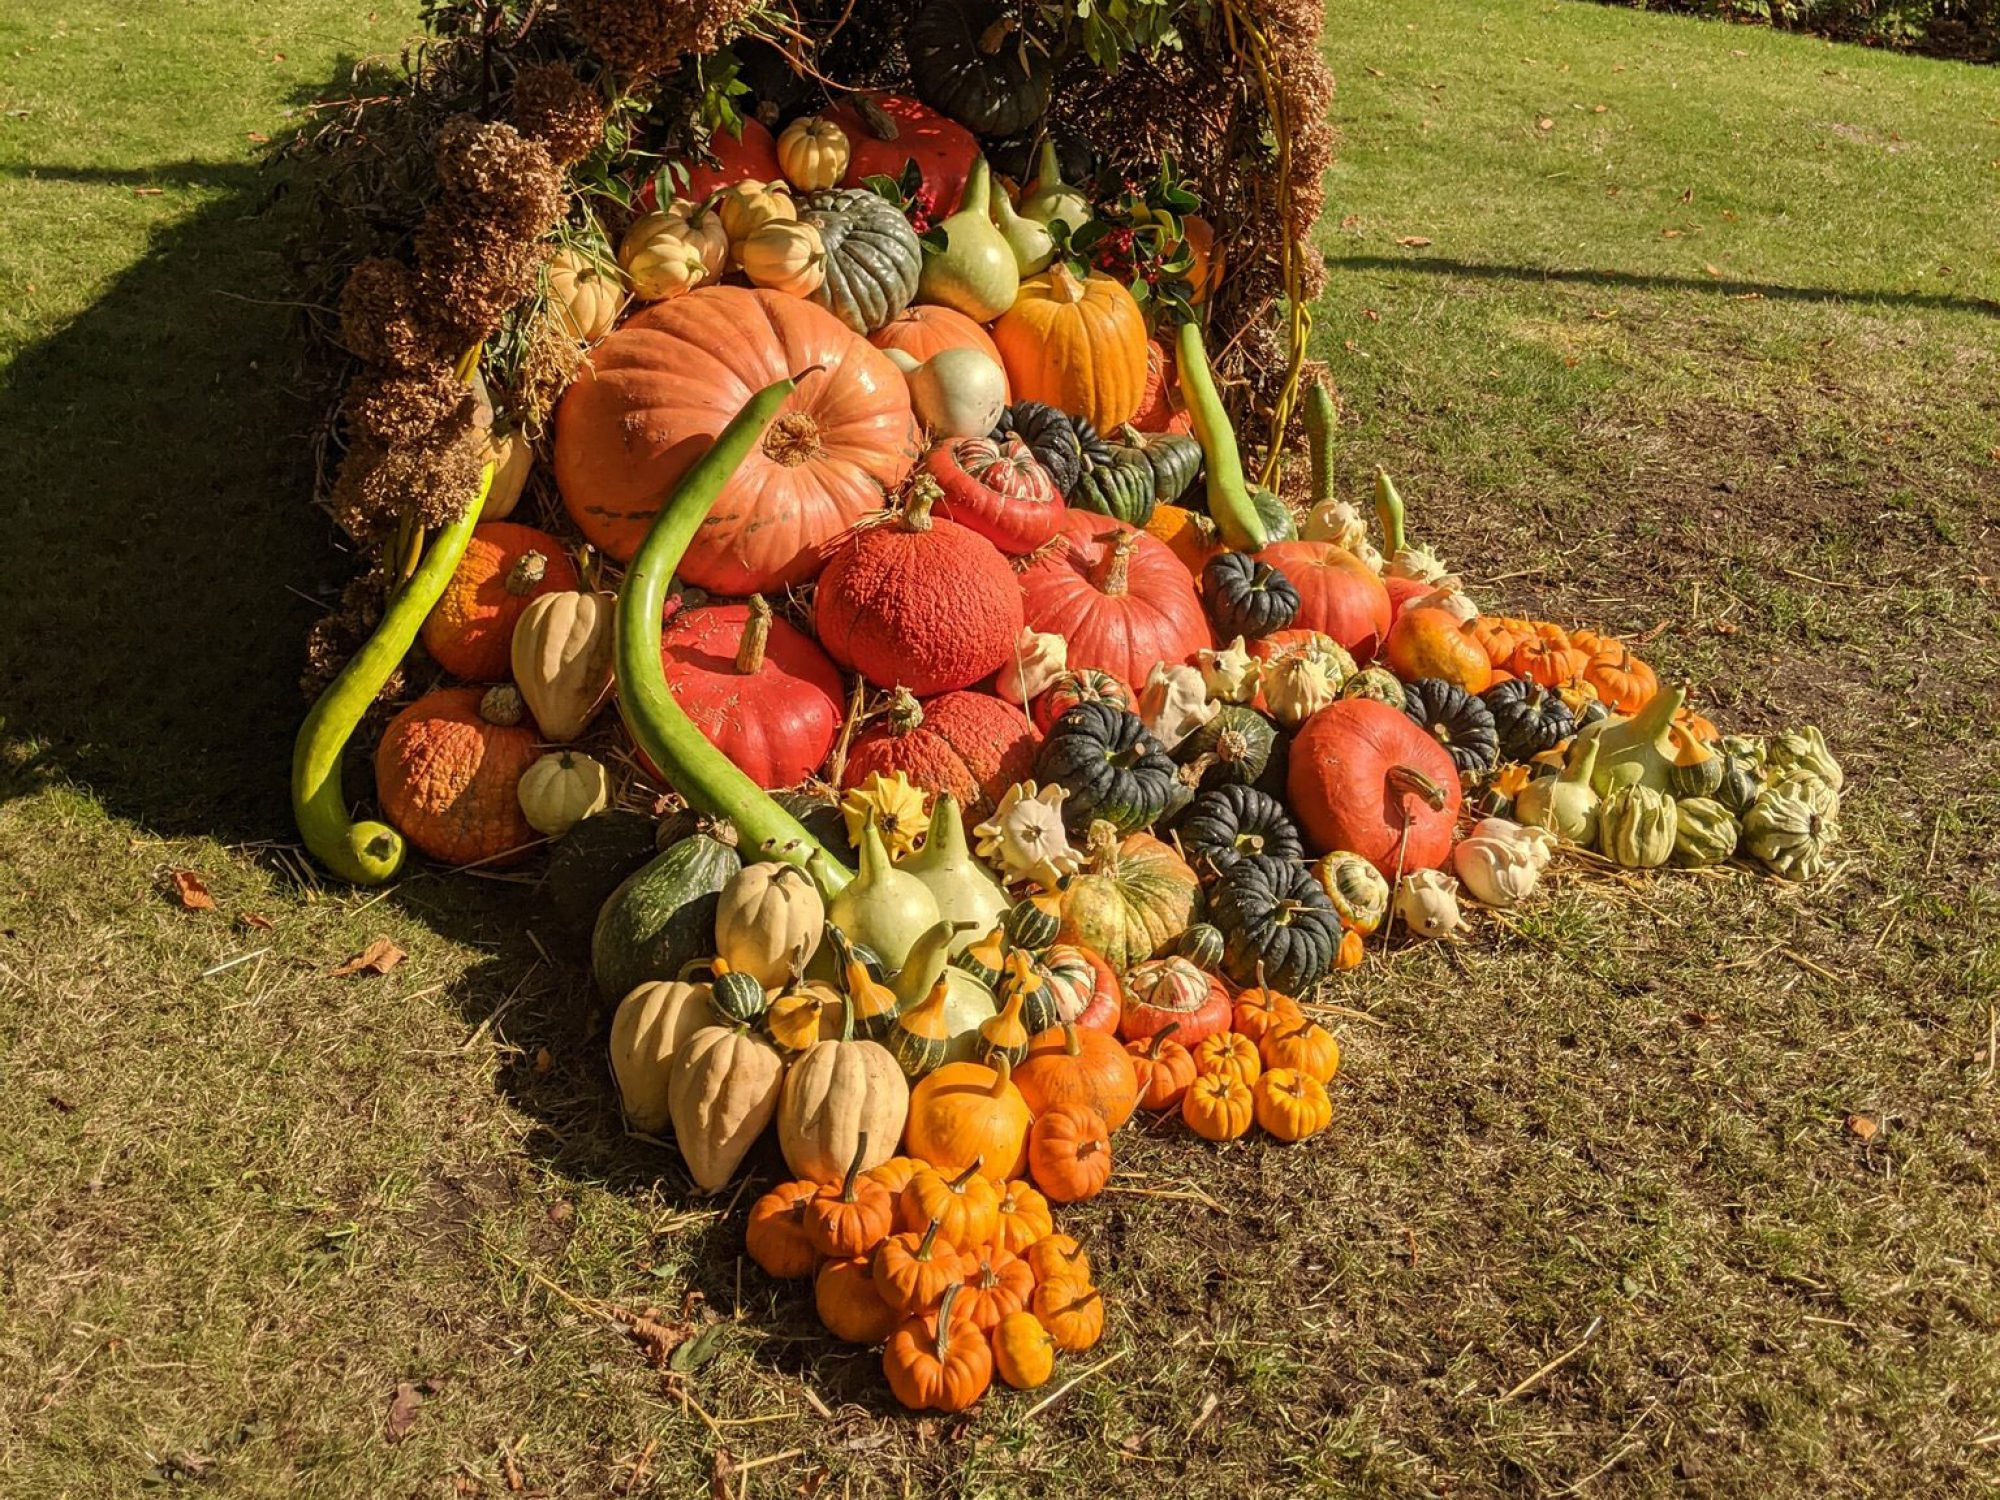 A cornucopia of pumpkins squash and gourds